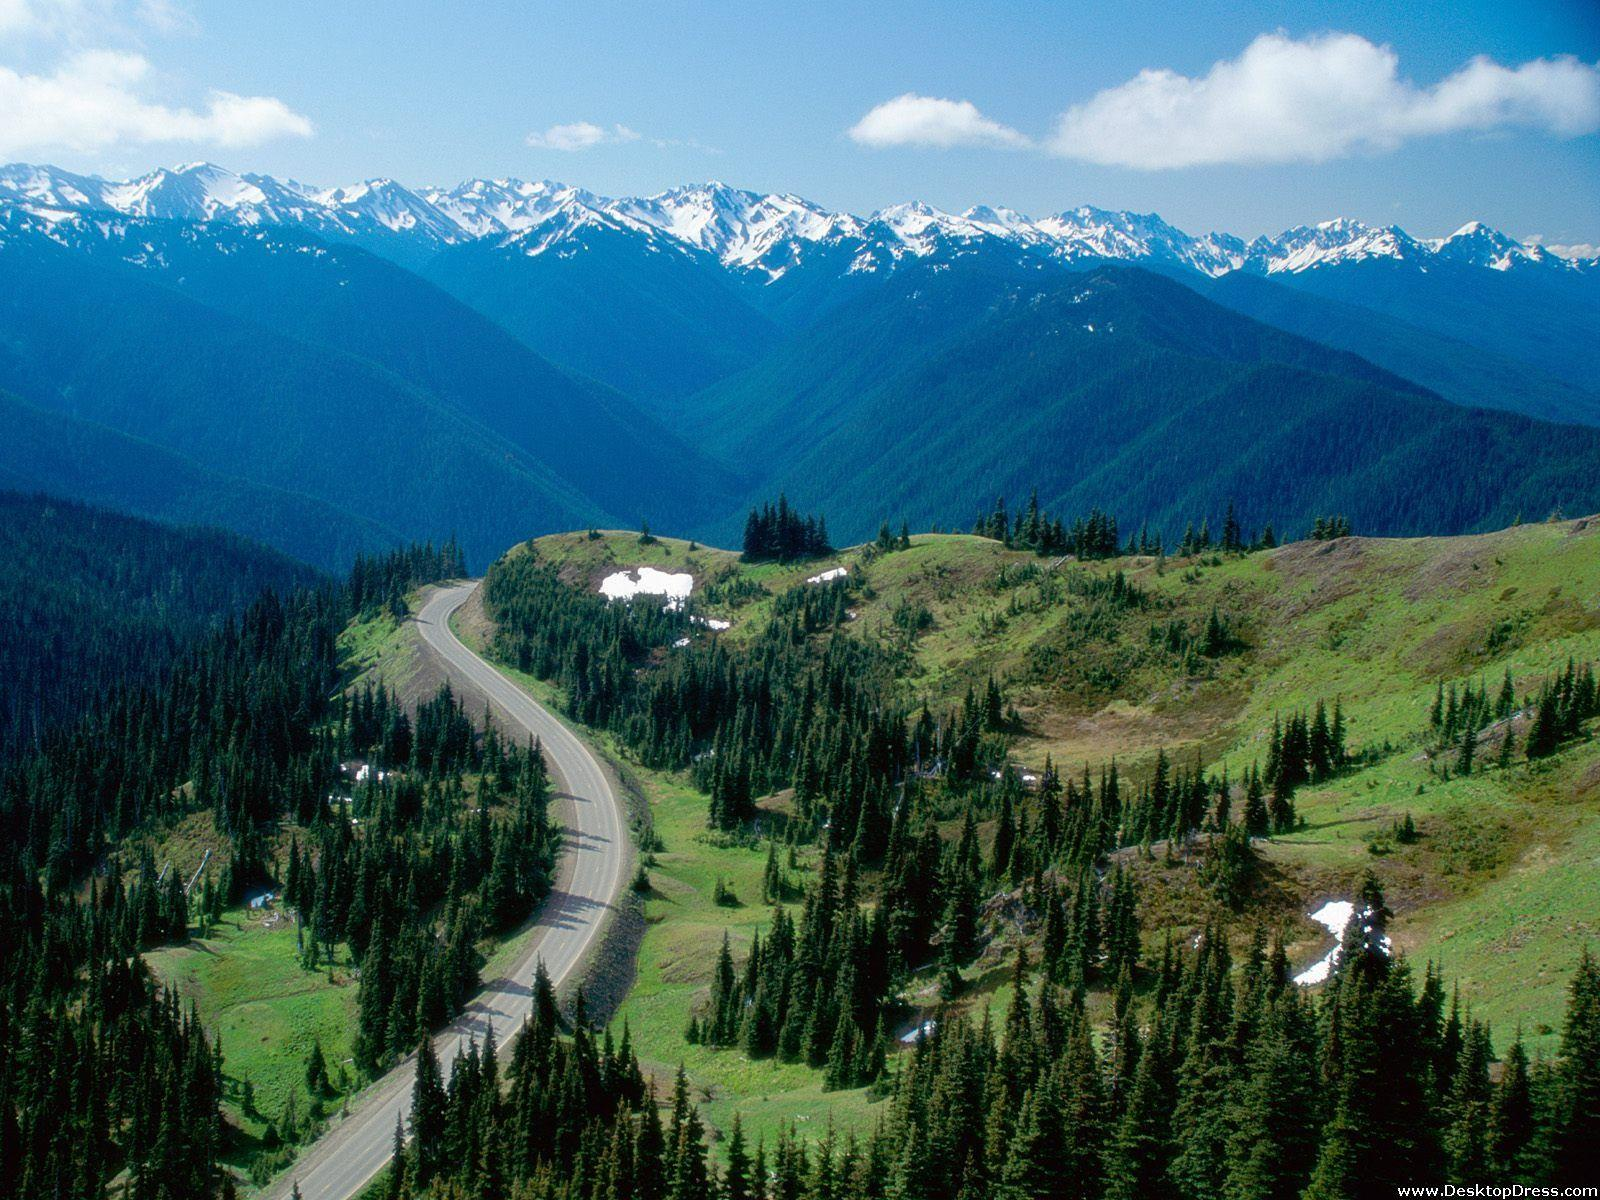 Desktop Wallpapers » Natural Backgrounds » Olympic Range, Olympic